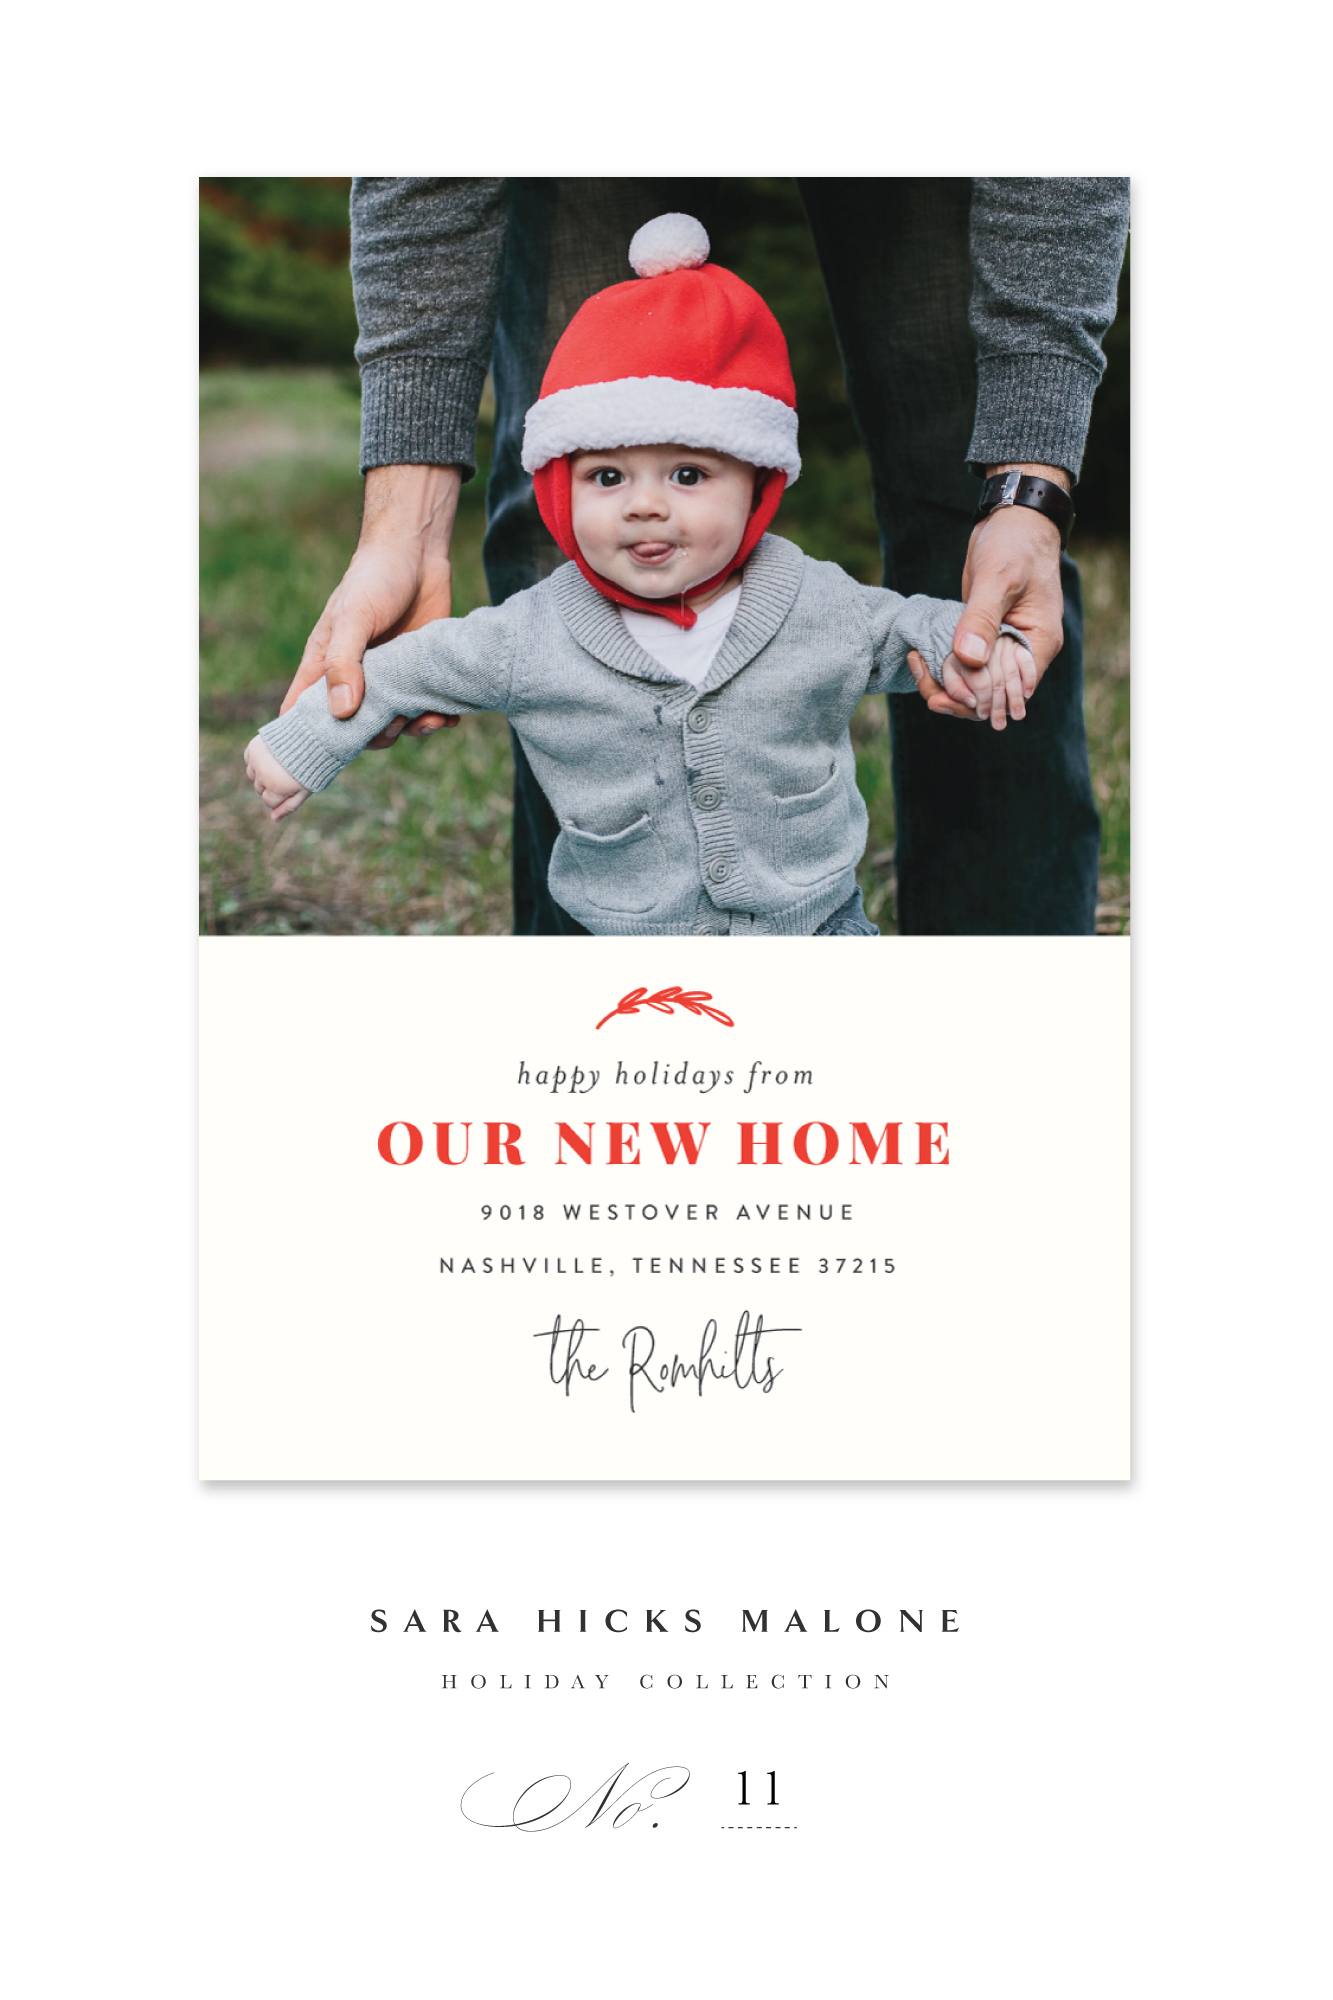 'OUR NEW HOME FOR THE HOLIDAYS' BY Sara Hicks Malone